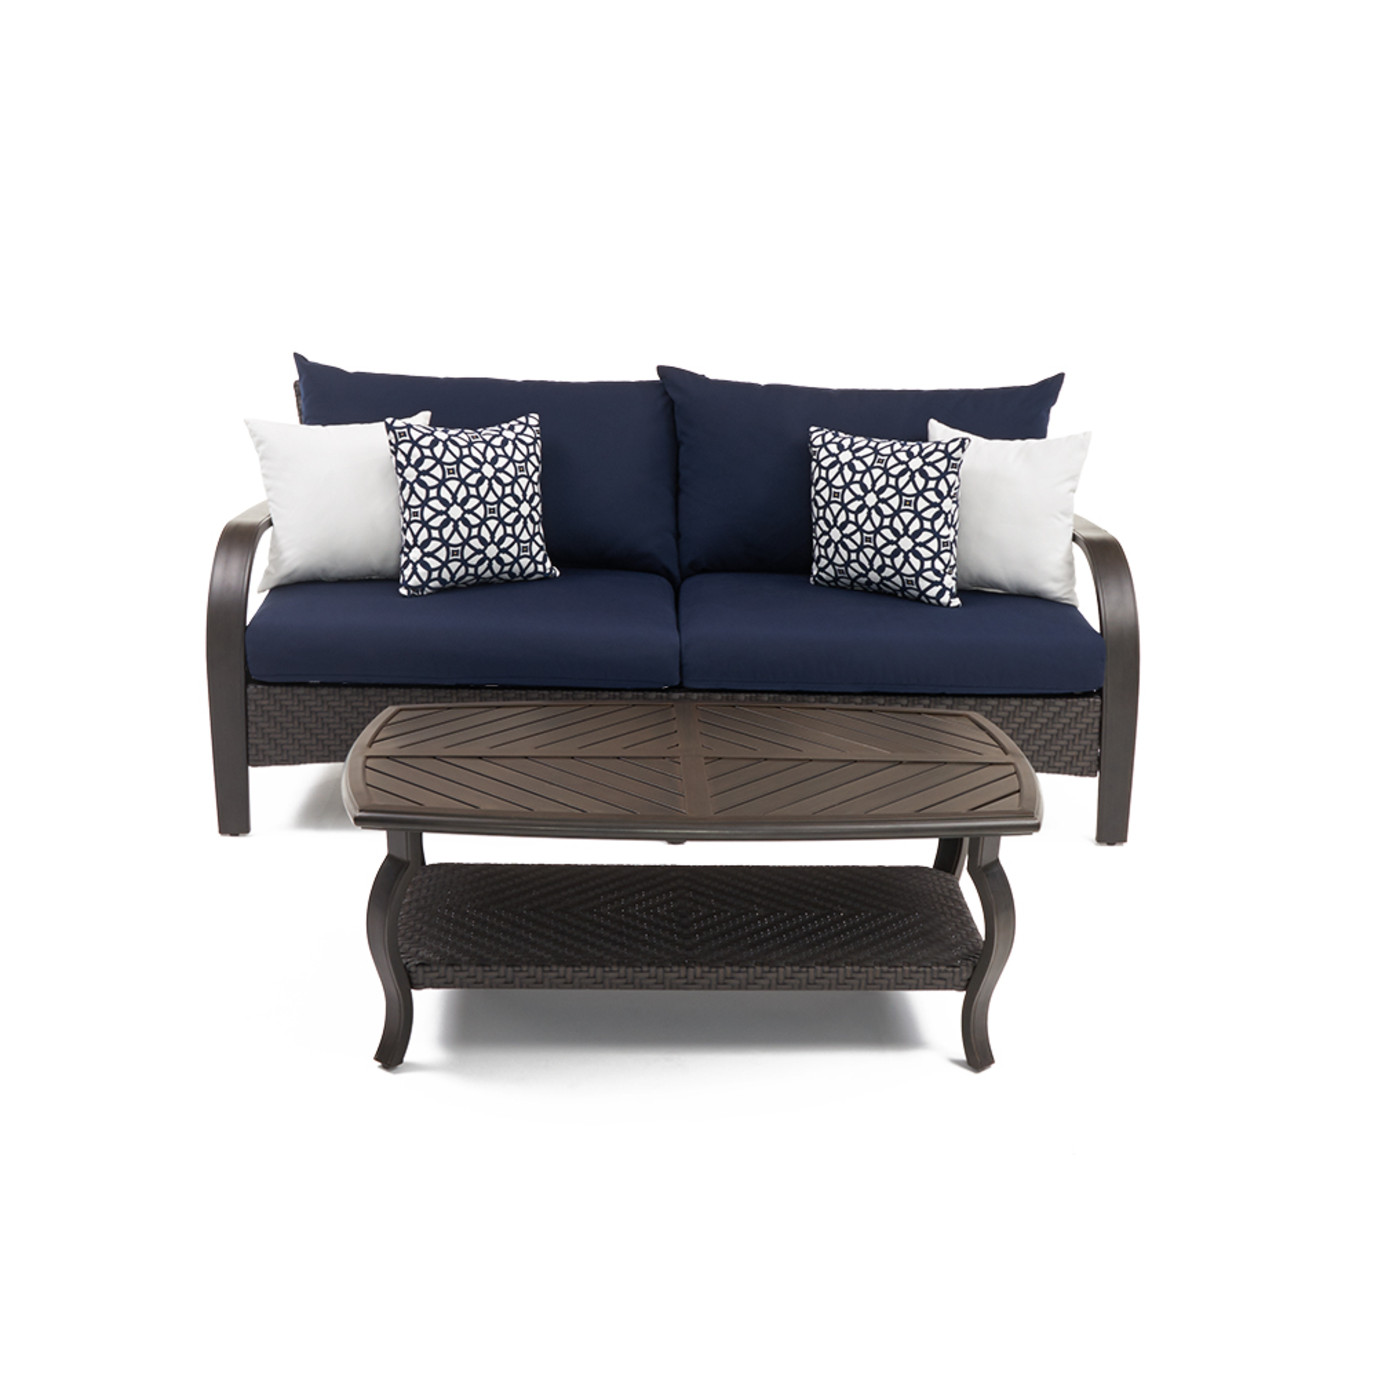 Barcelo Sofa Amp Coffee Table Navy Blue Rst Brands